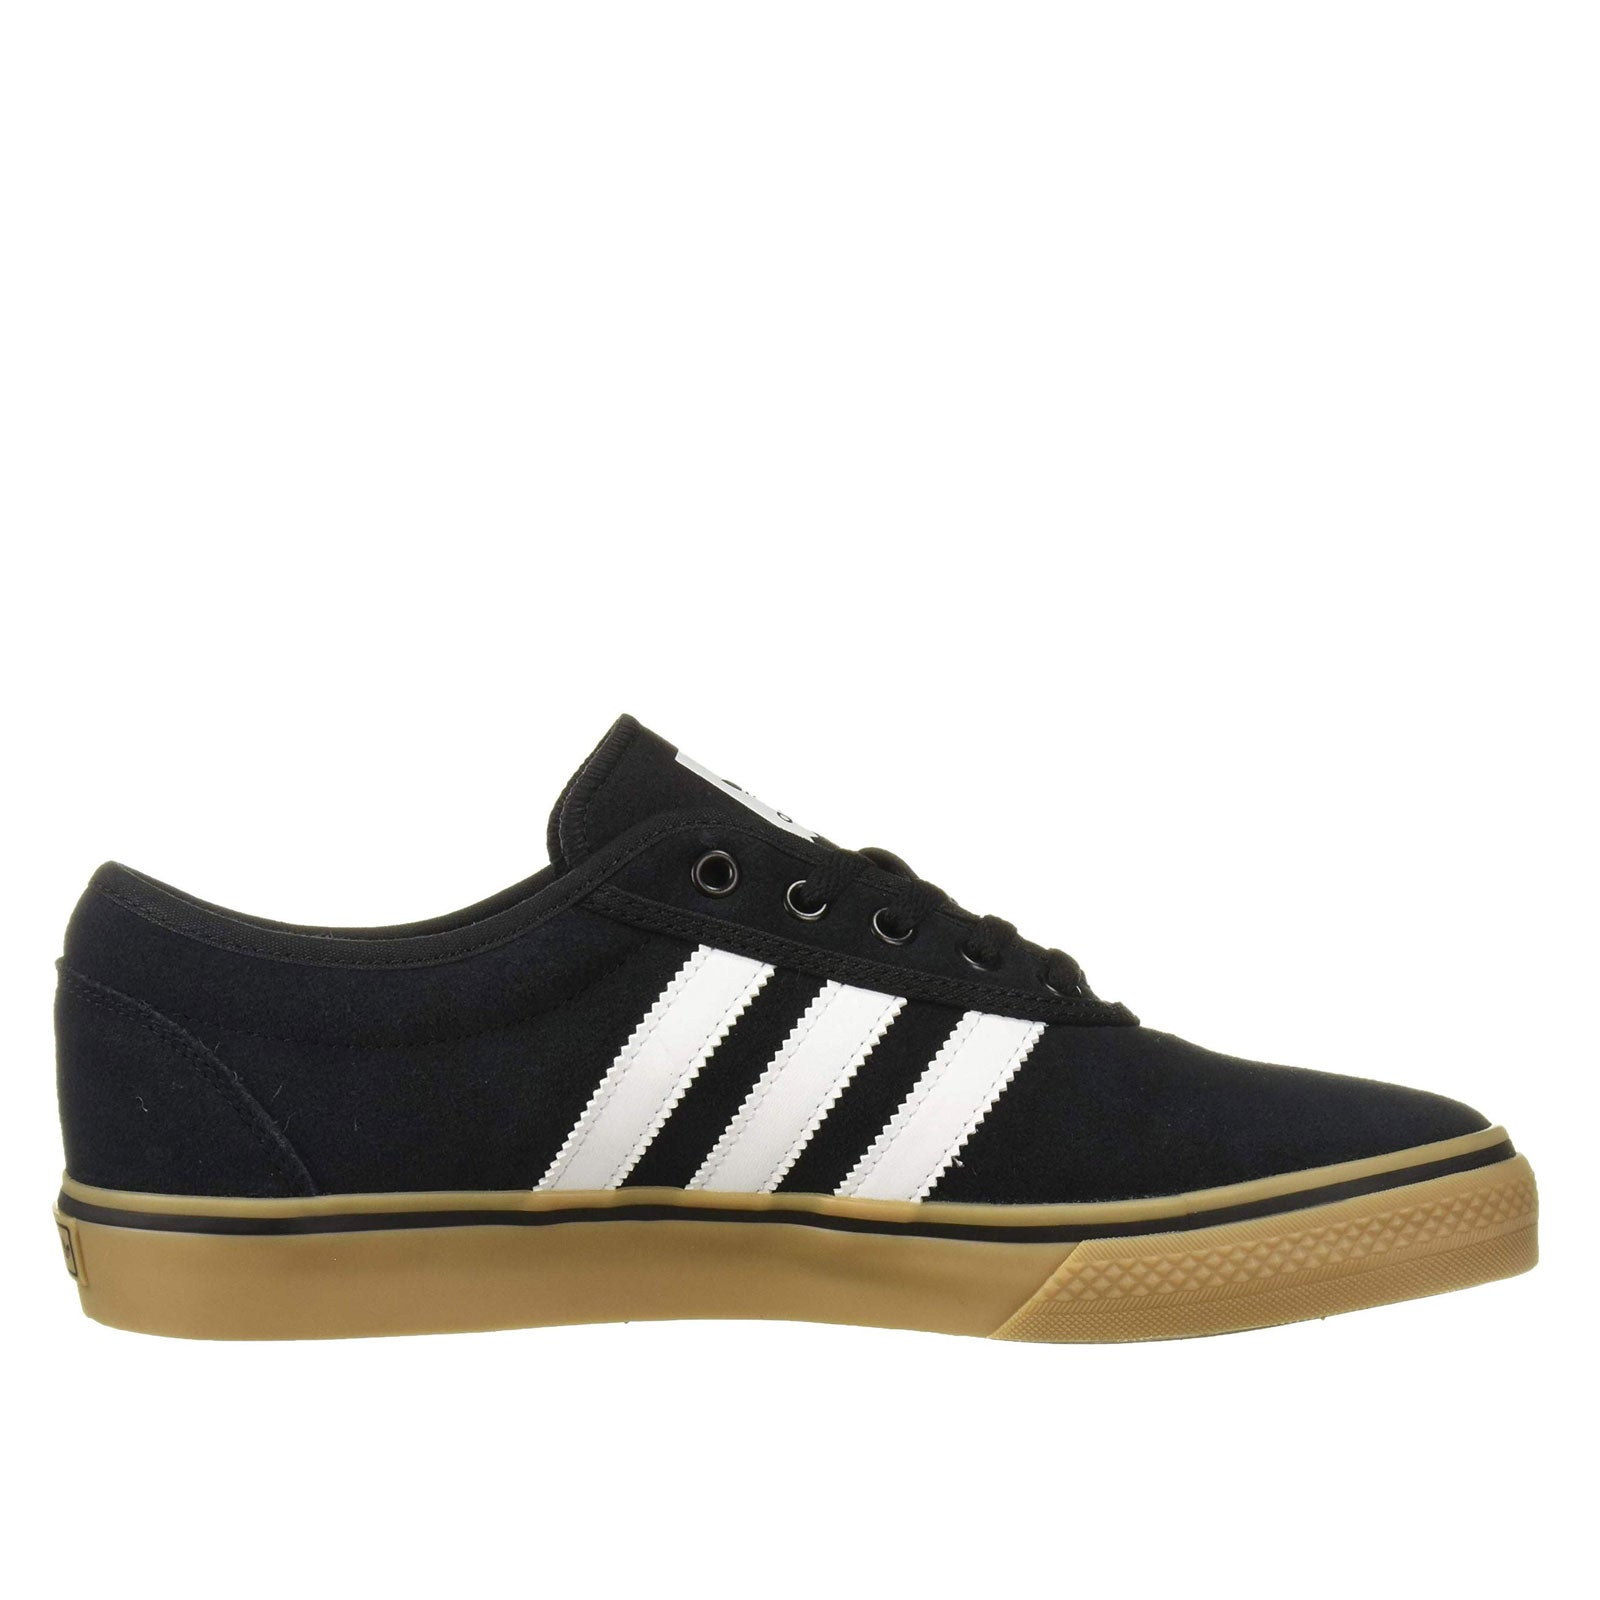 Adidas Adi-Ease EE6107 (Black/White/Gum)